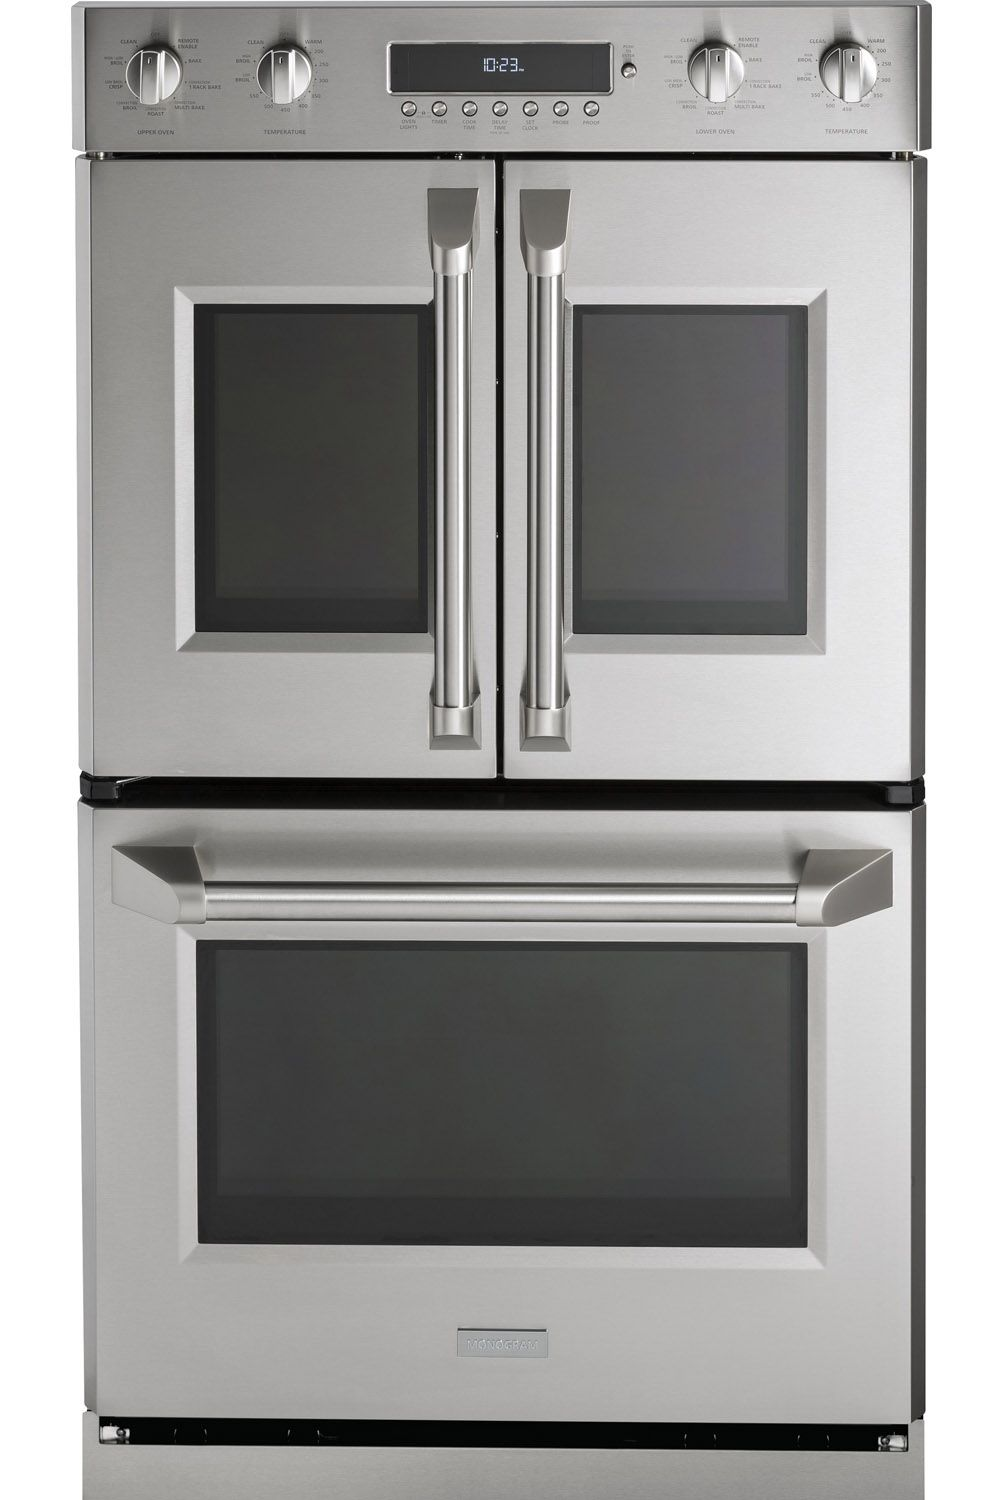 Ge monogram 30 professional frenchdoor convection double